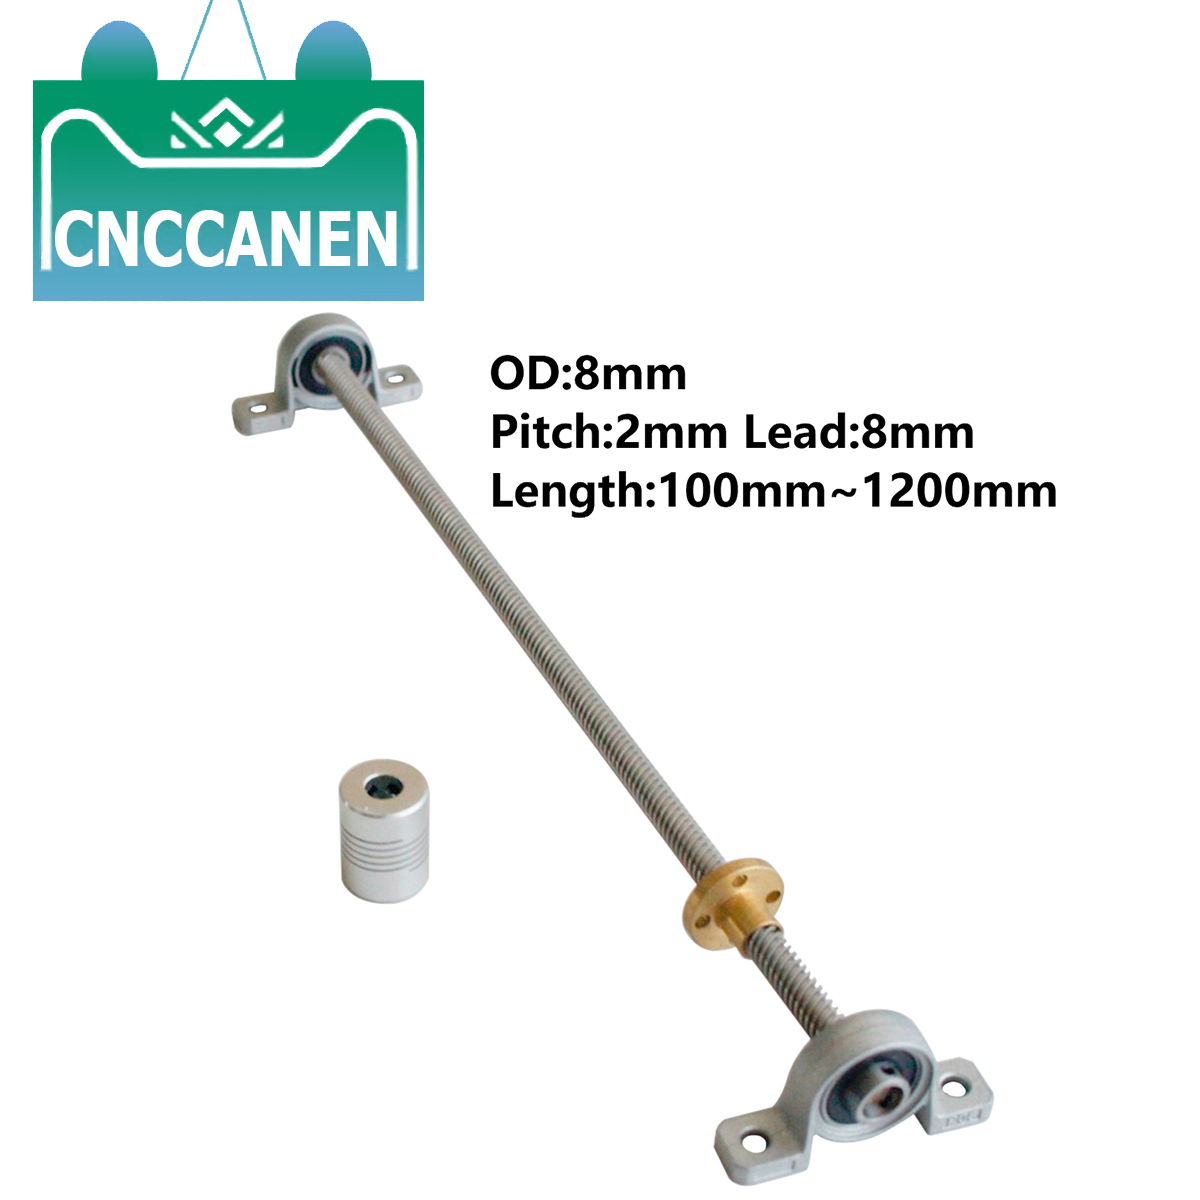 T8 Lead Screw 100mm -1200mm Pitch 2mm Lead 8mm With Nut & KP08 Bearing Bracket & 5*8 Mm Flexible Coupling 3D Printer Parts